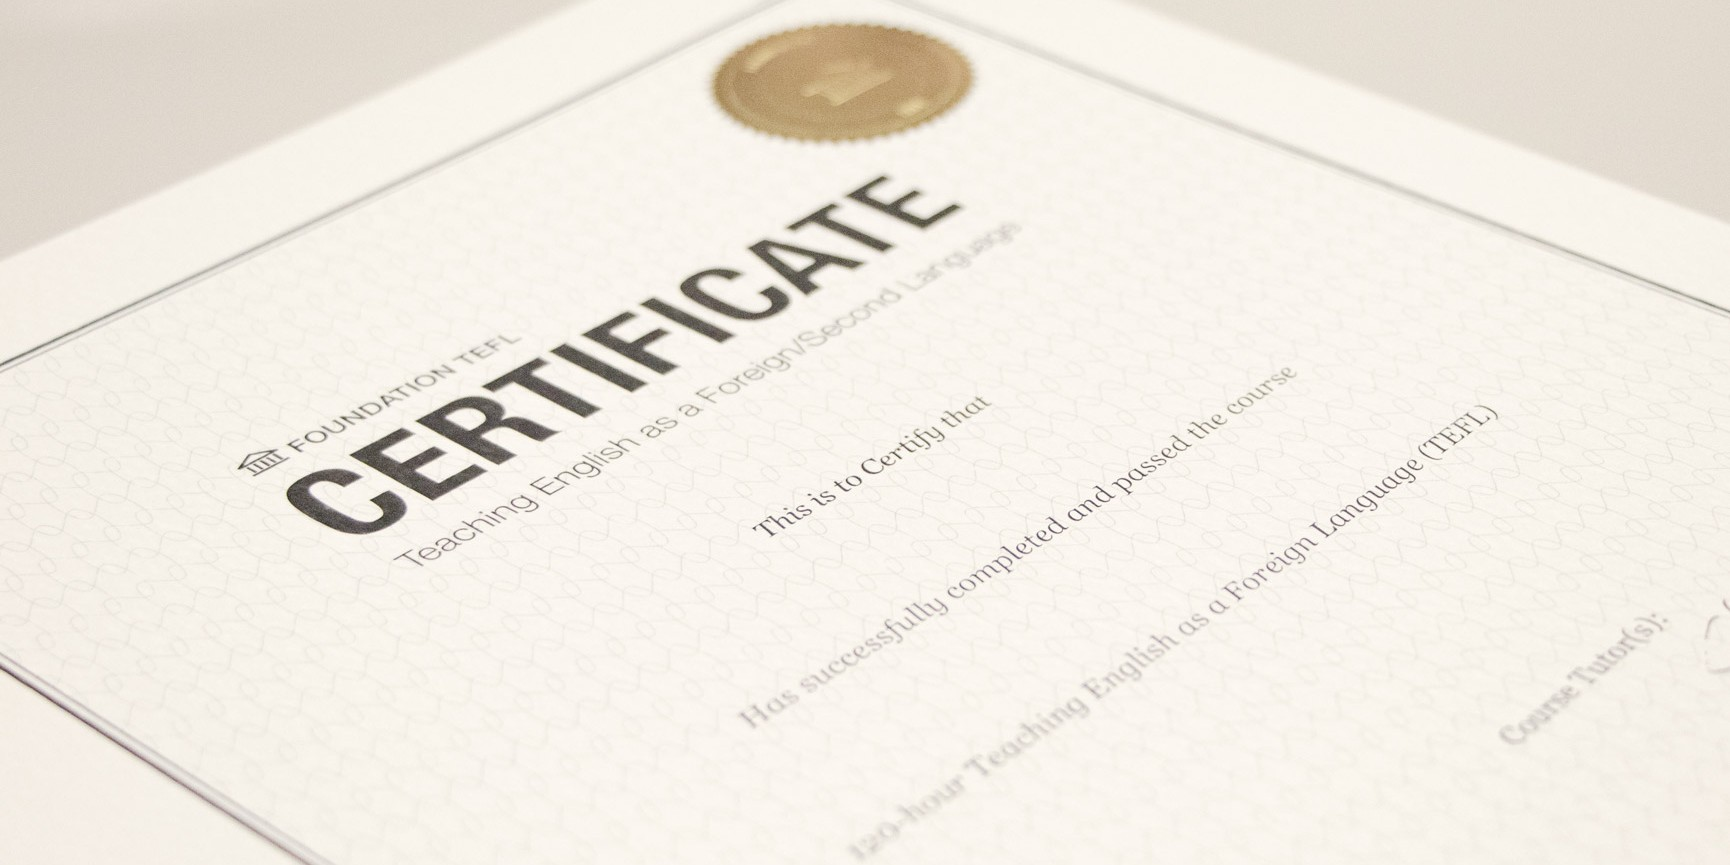 EVERYTHING YOU NEED TO KNOW ABOUT TESOL CERTIFICATIONS